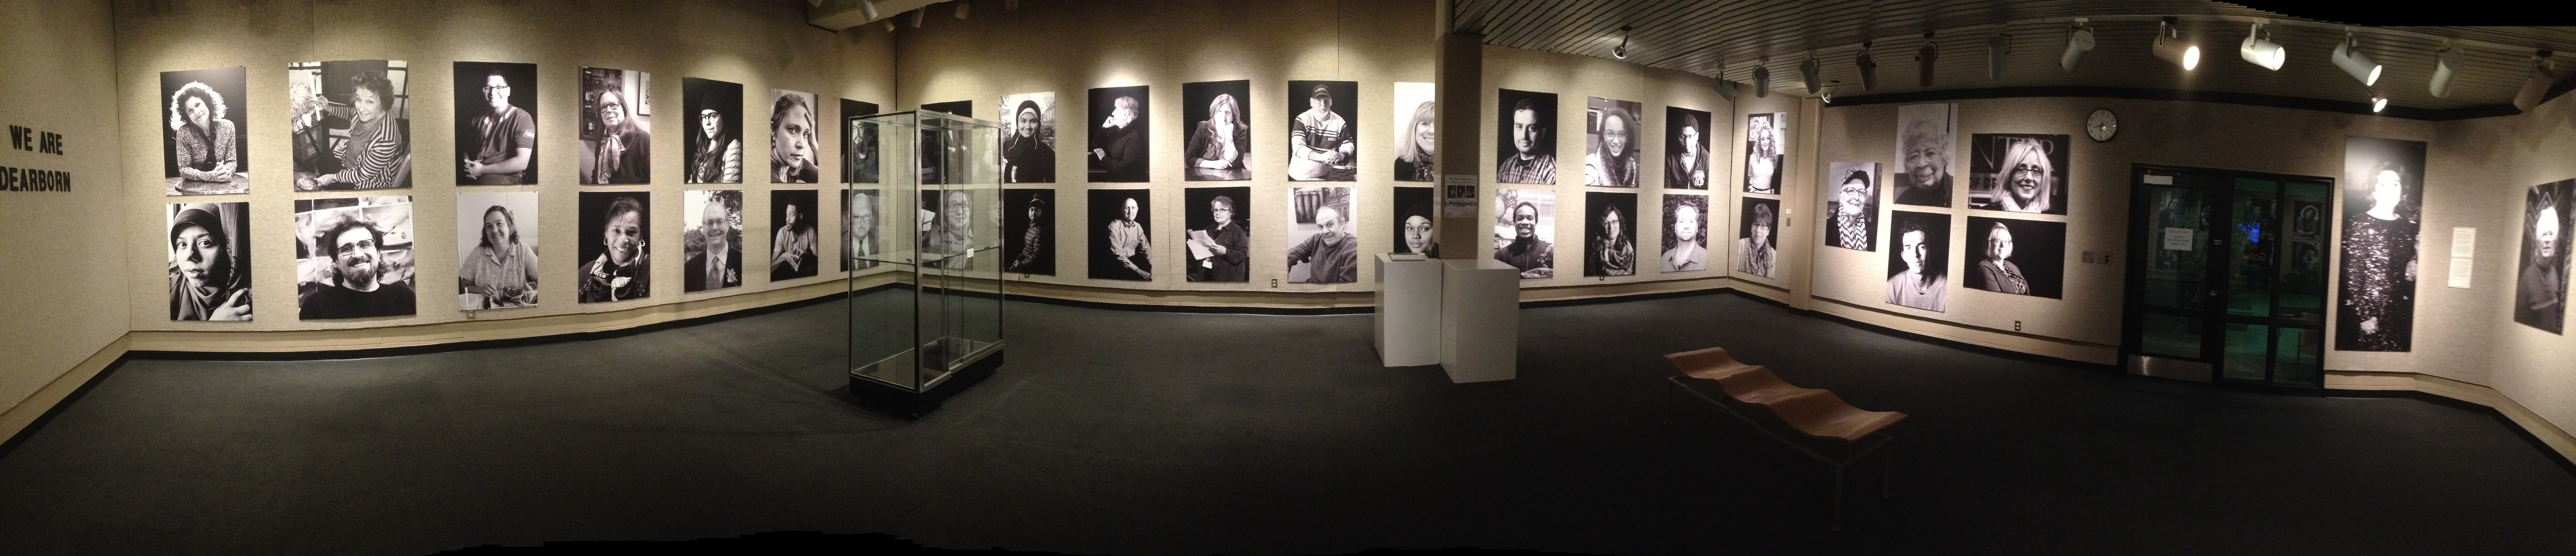 "Panoramic shot of ""We Are Dearborn"" exhibit"